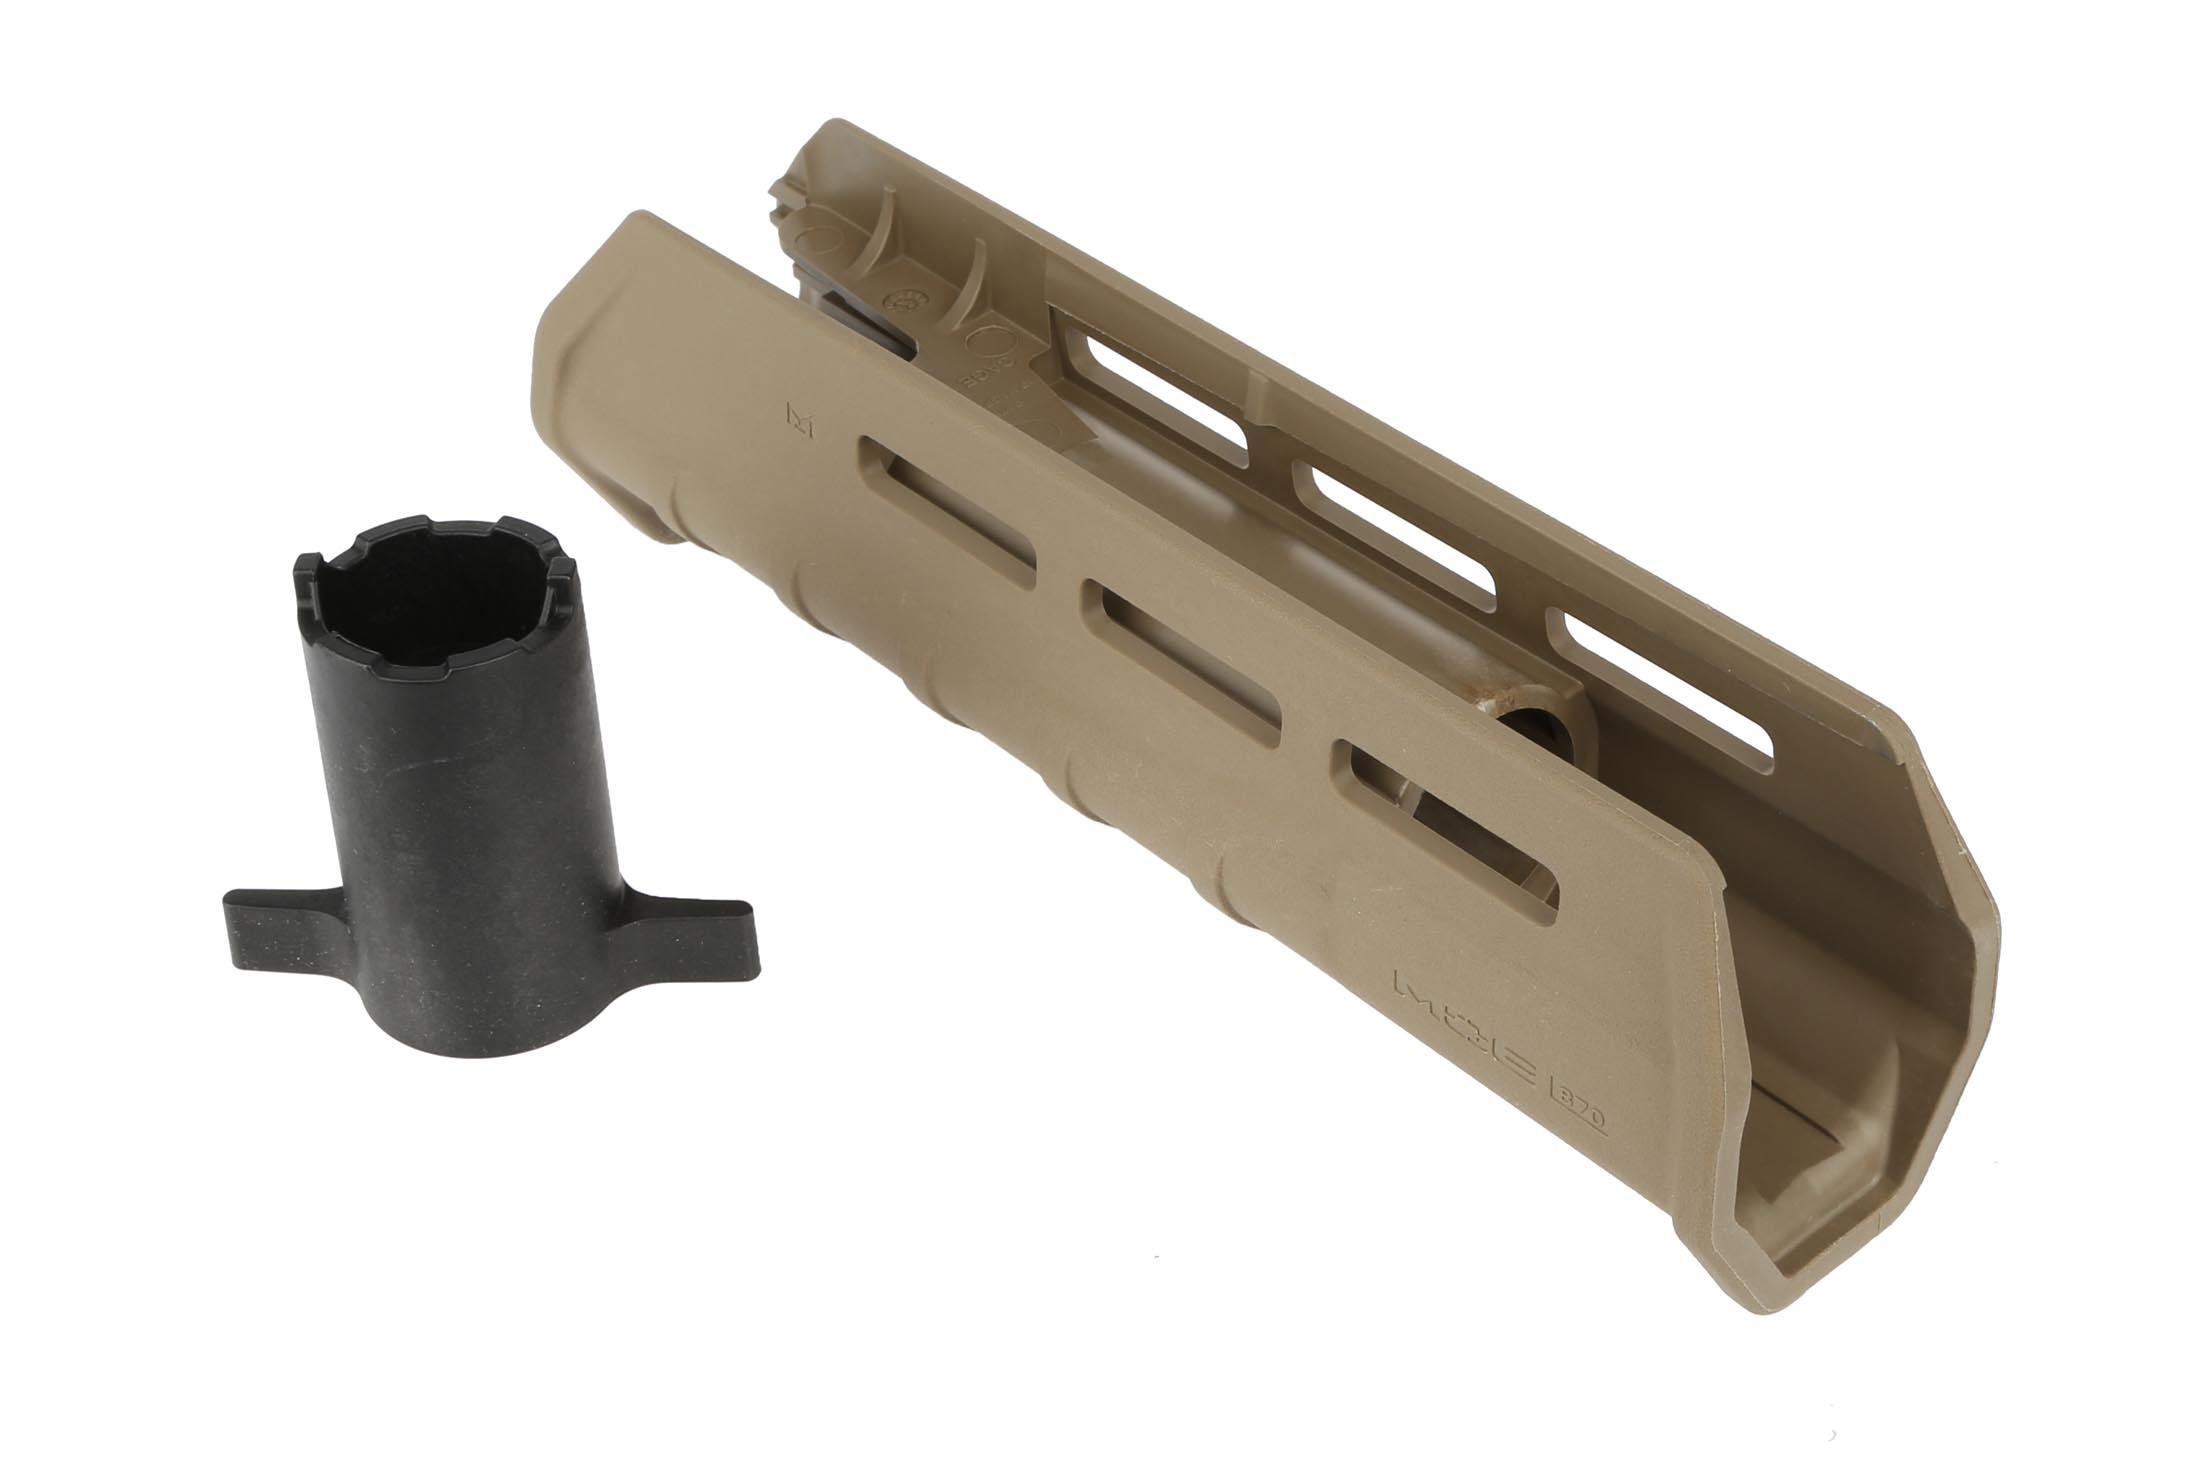 The pump action remington 870 is easily upgraded with the magpul moe forend stock